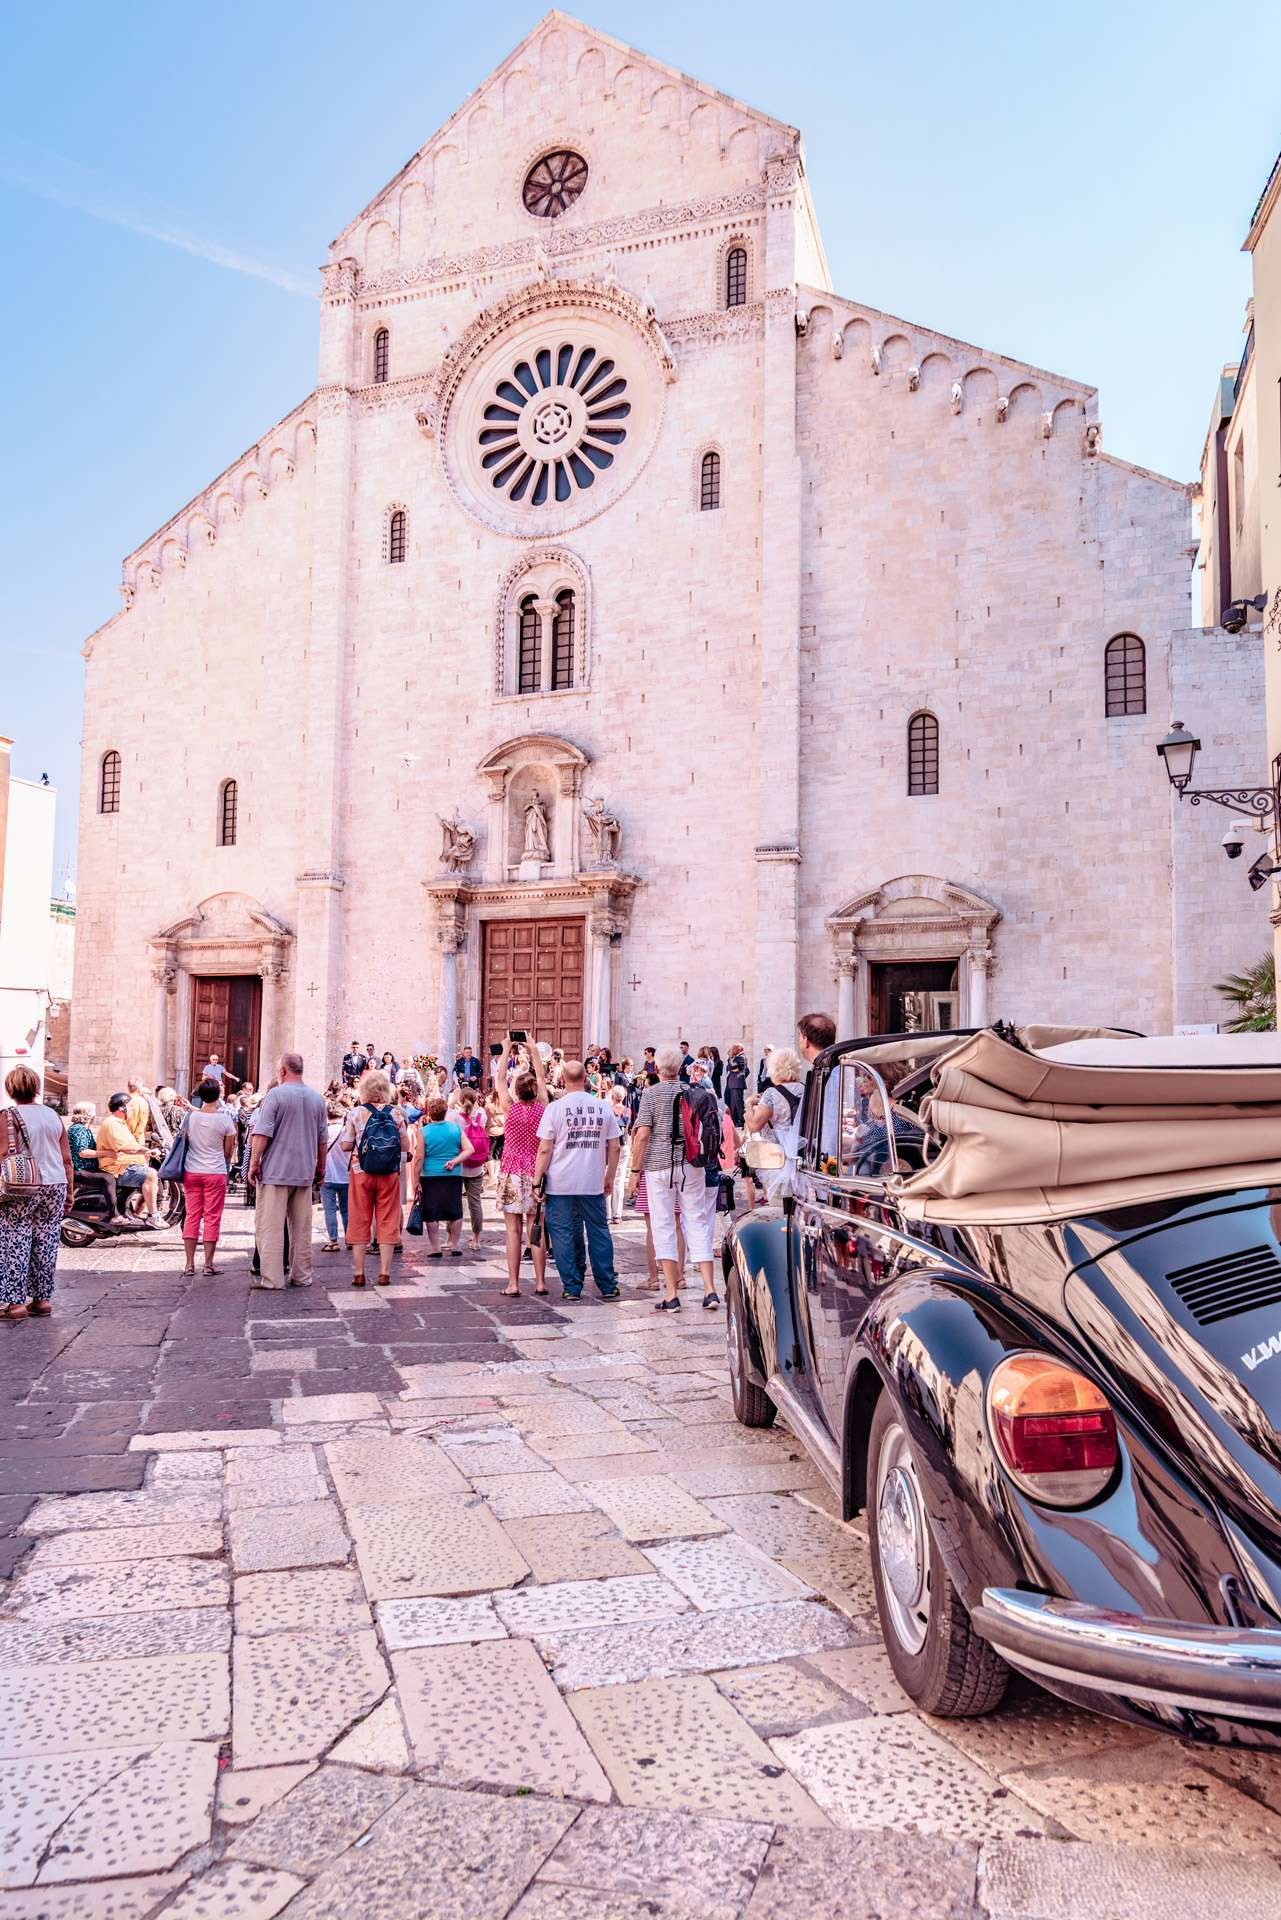 Cathedral of San Sabino (Saint Sabinus) in the old town of Bari city.